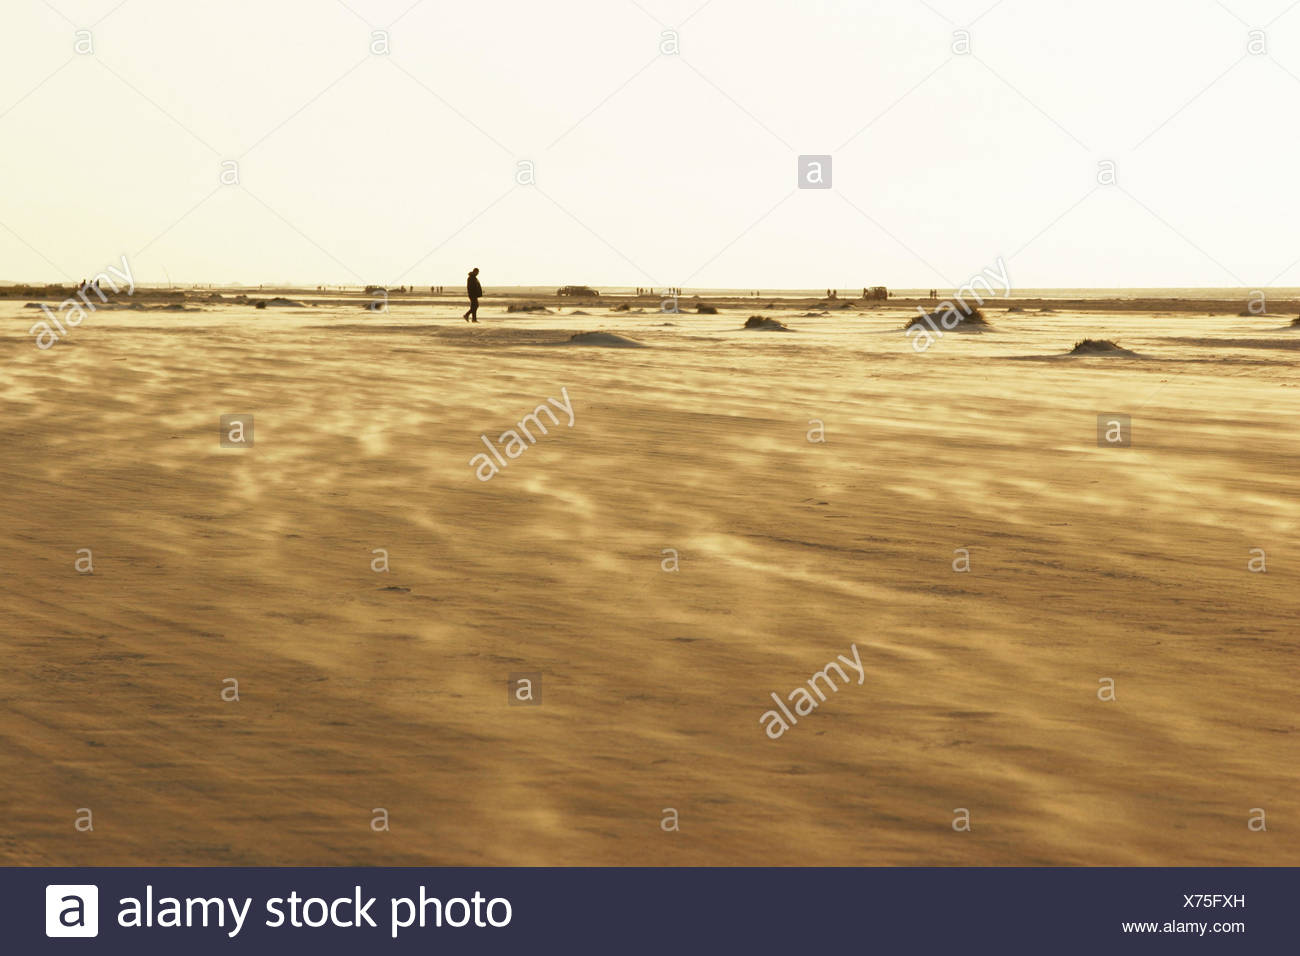 Beach, person, vastness, - Stock Image